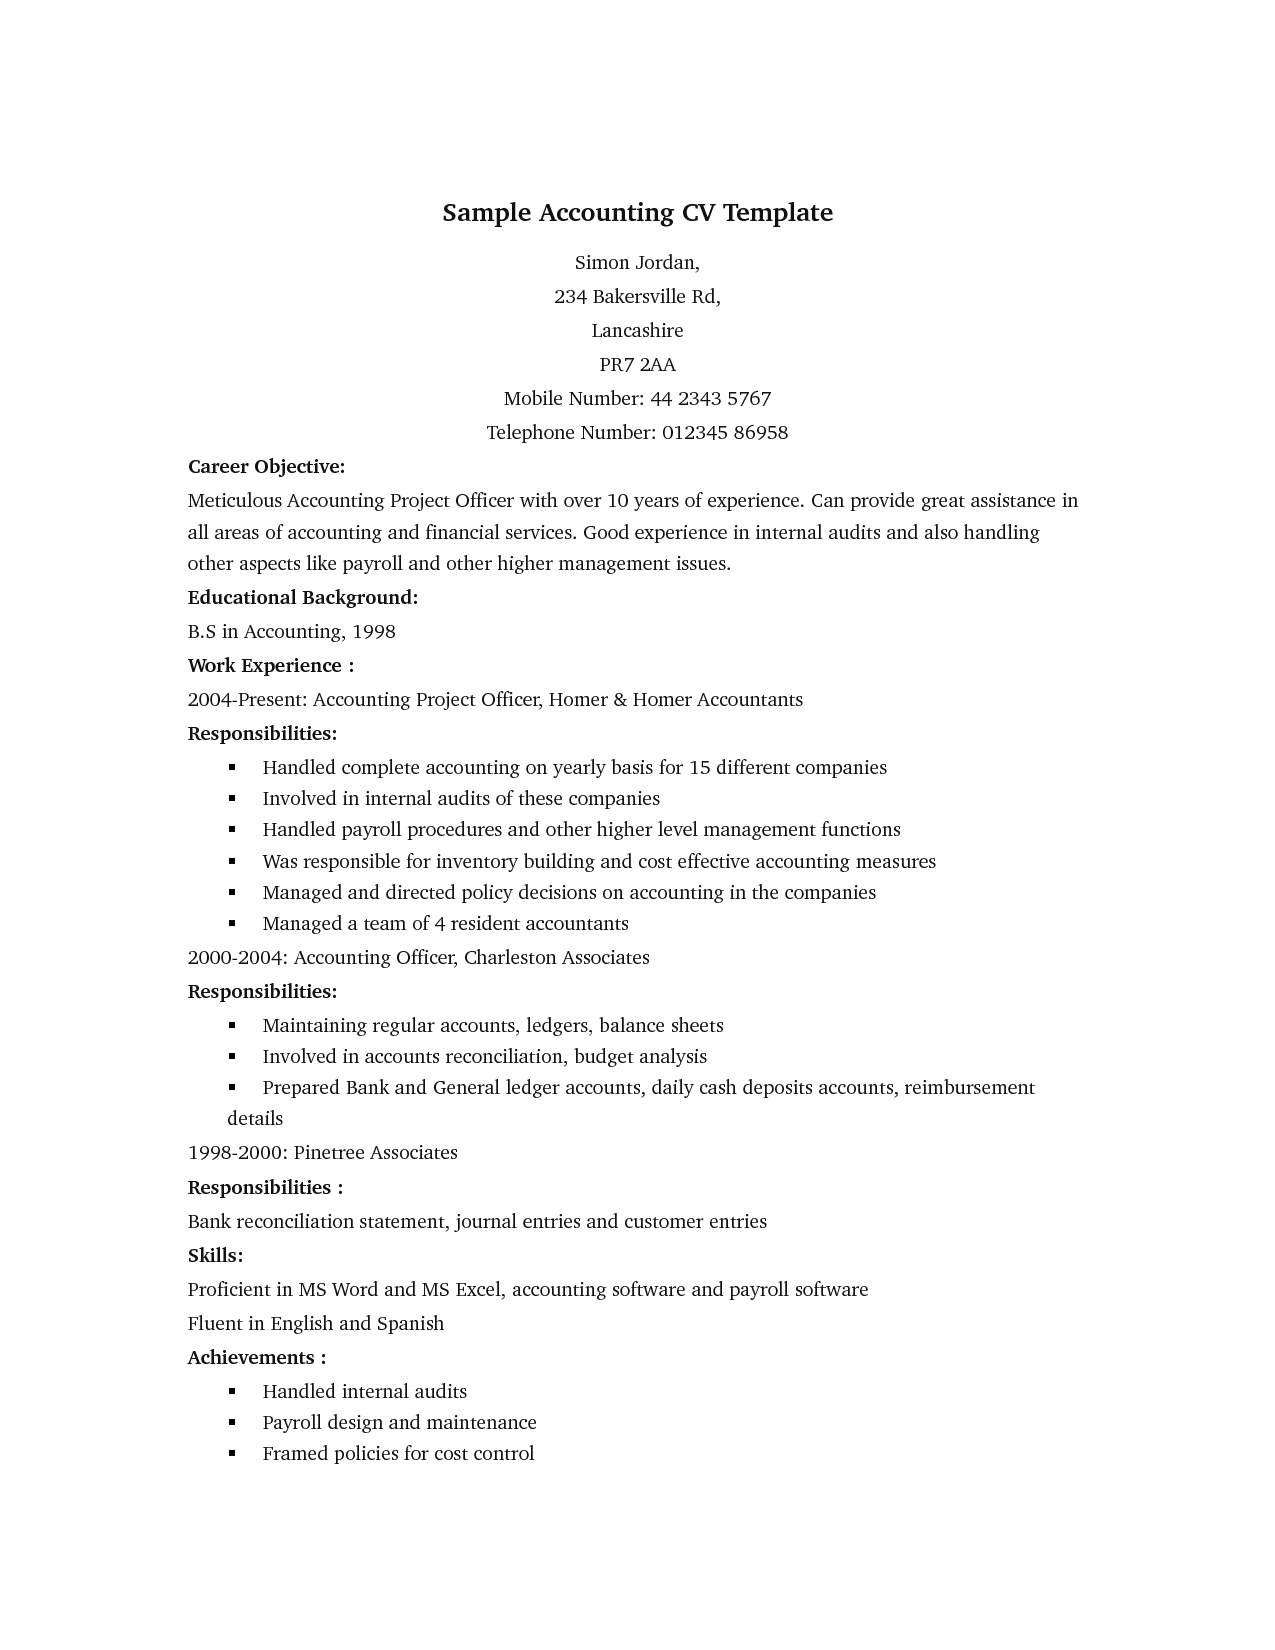 Accountant Sample Resume Accountant Resume Sample Accounting